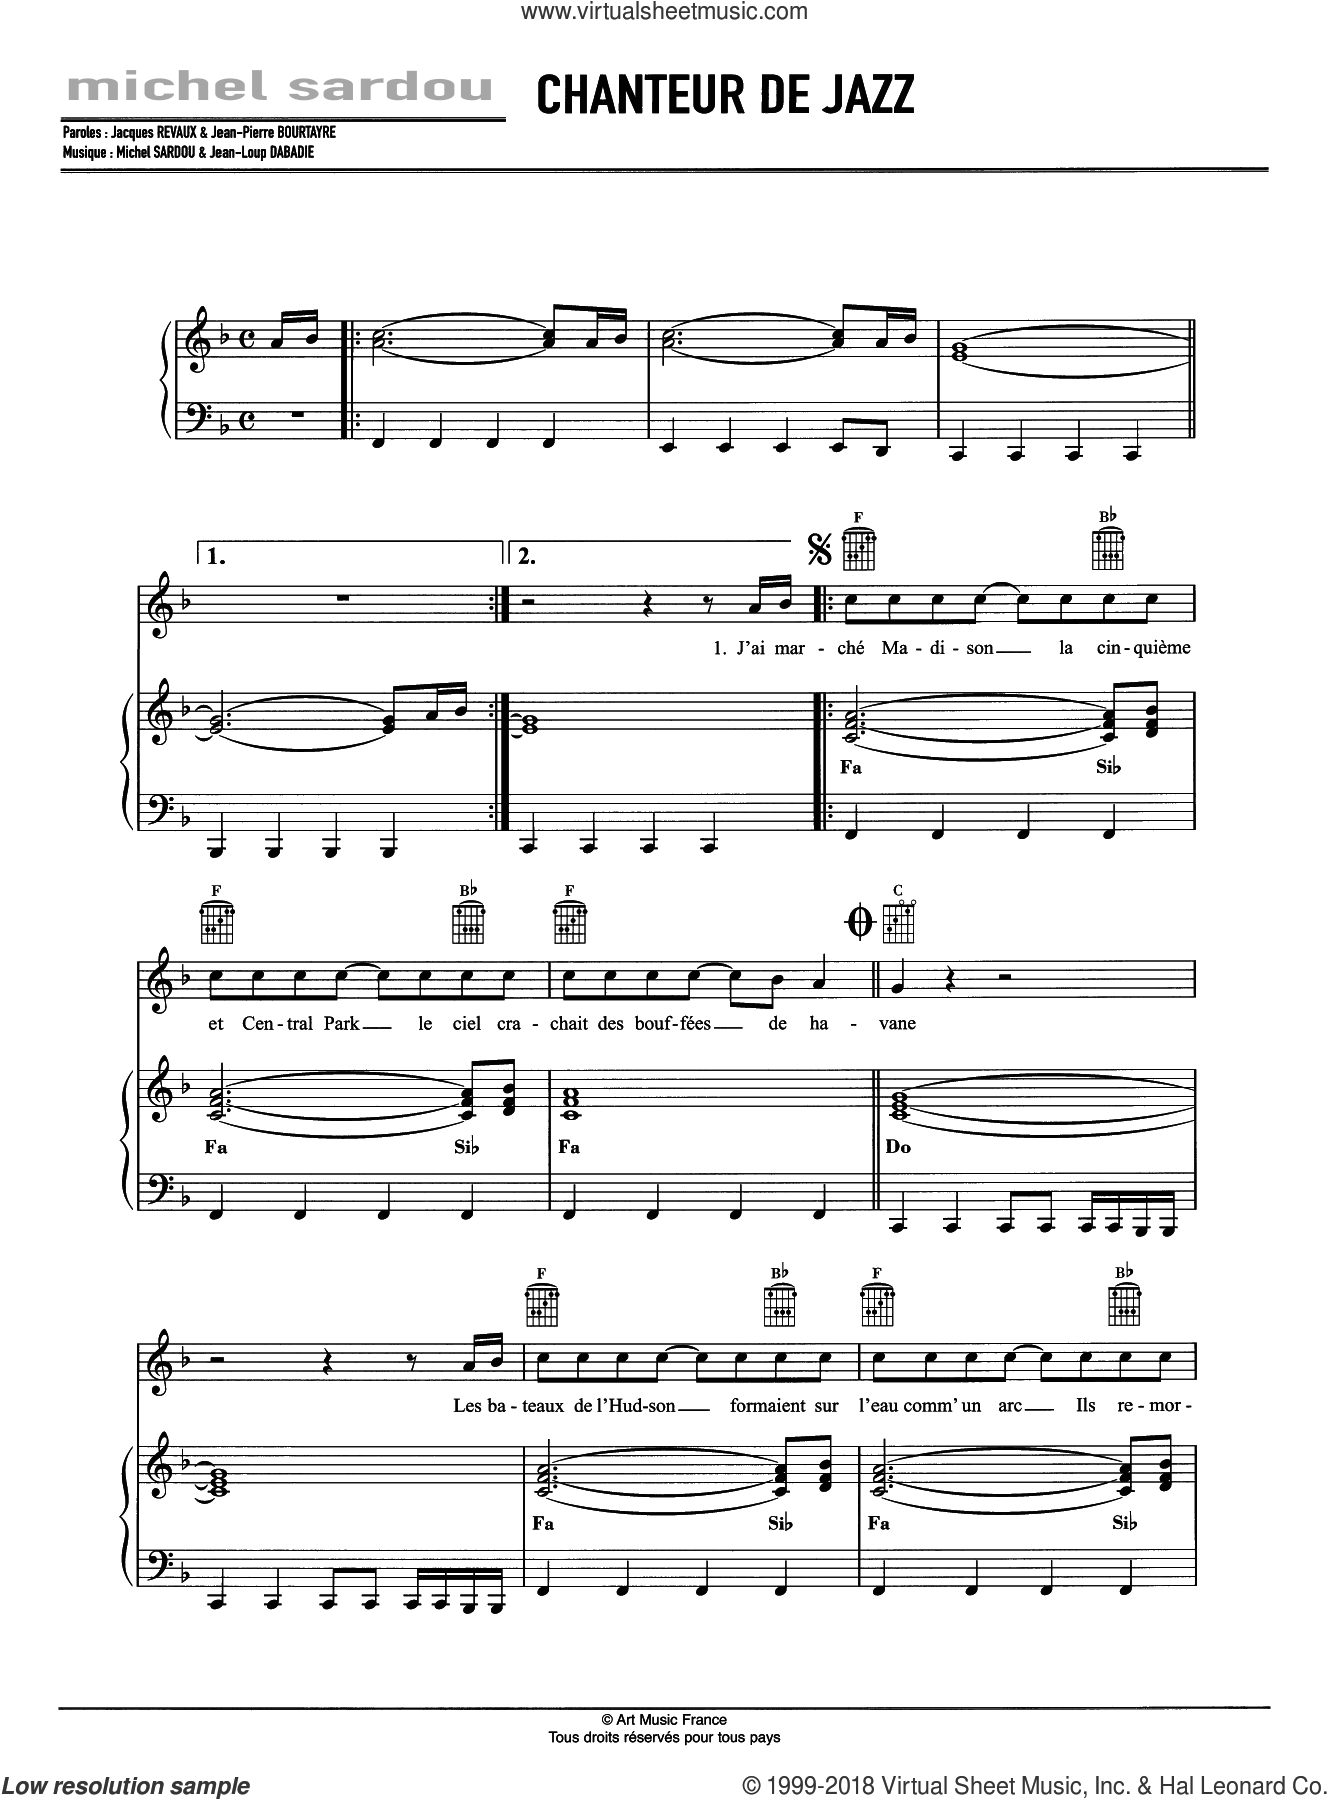 Chanteur De Jazz sheet music for voice, piano or guitar by Michel Sardou and Jean-Loup Dabadie, intermediate skill level